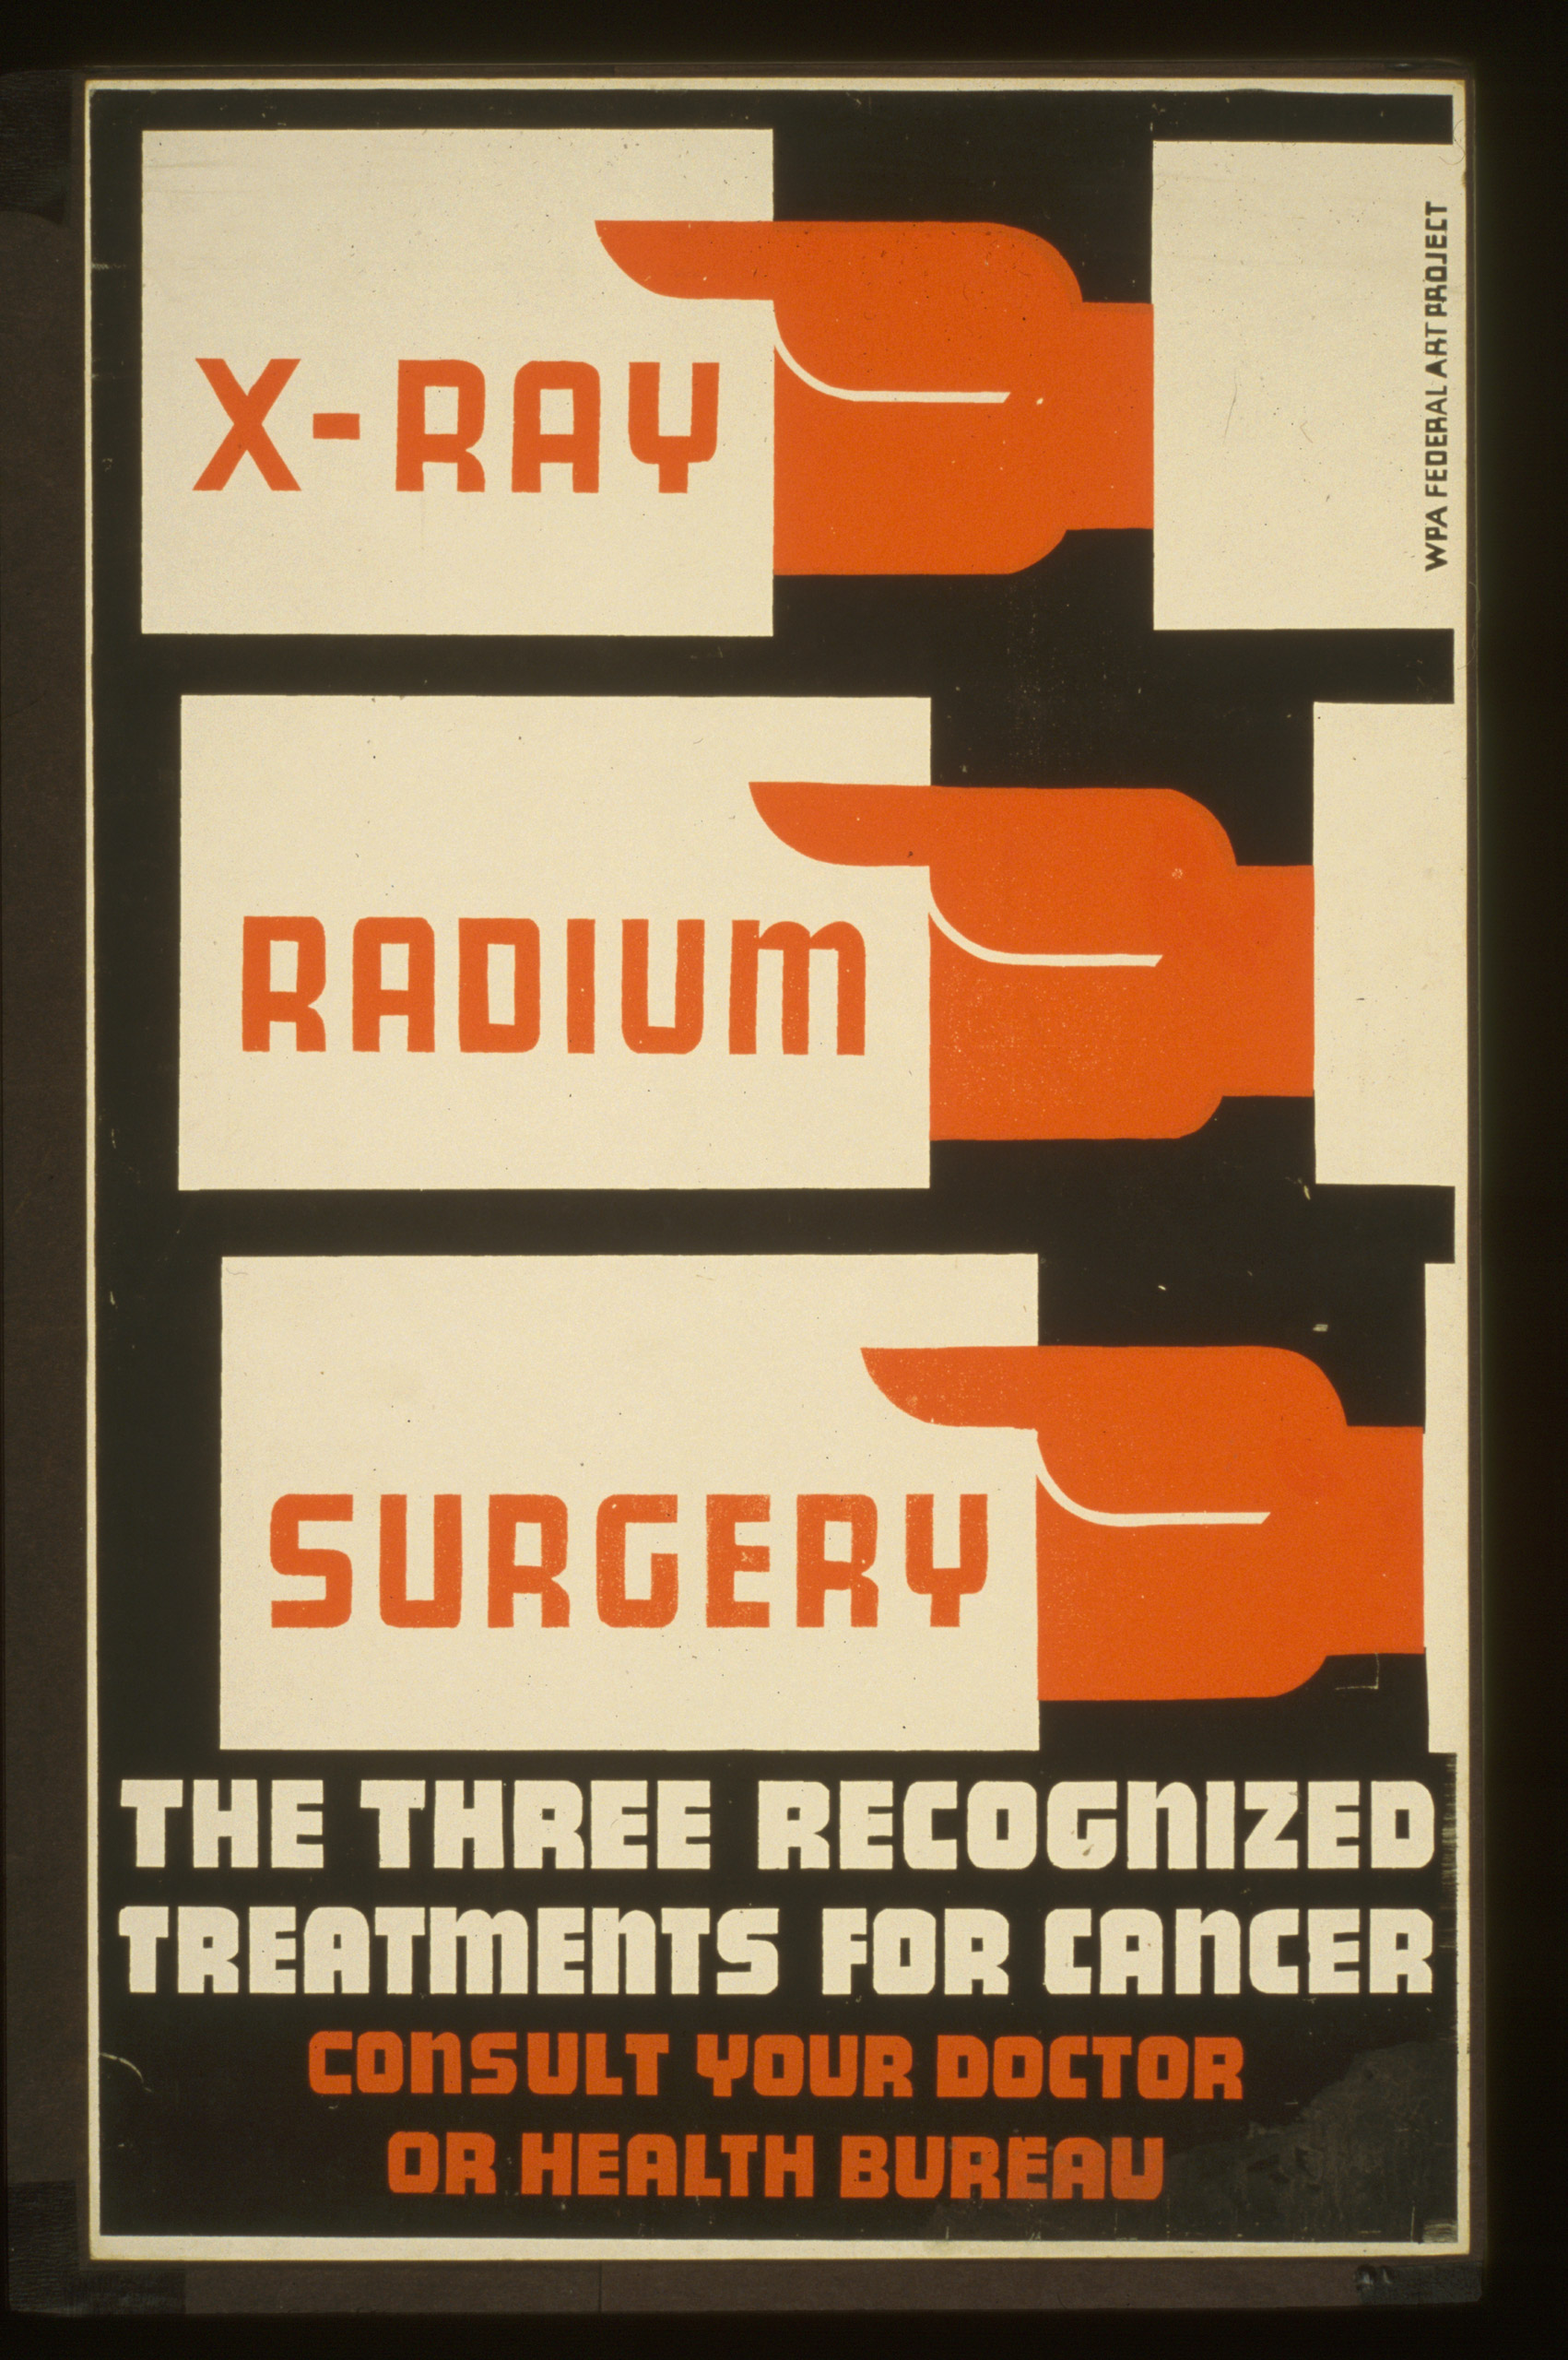 Poster promoting diagnosis and treatment for cancer. Created between 1936 and 1939.